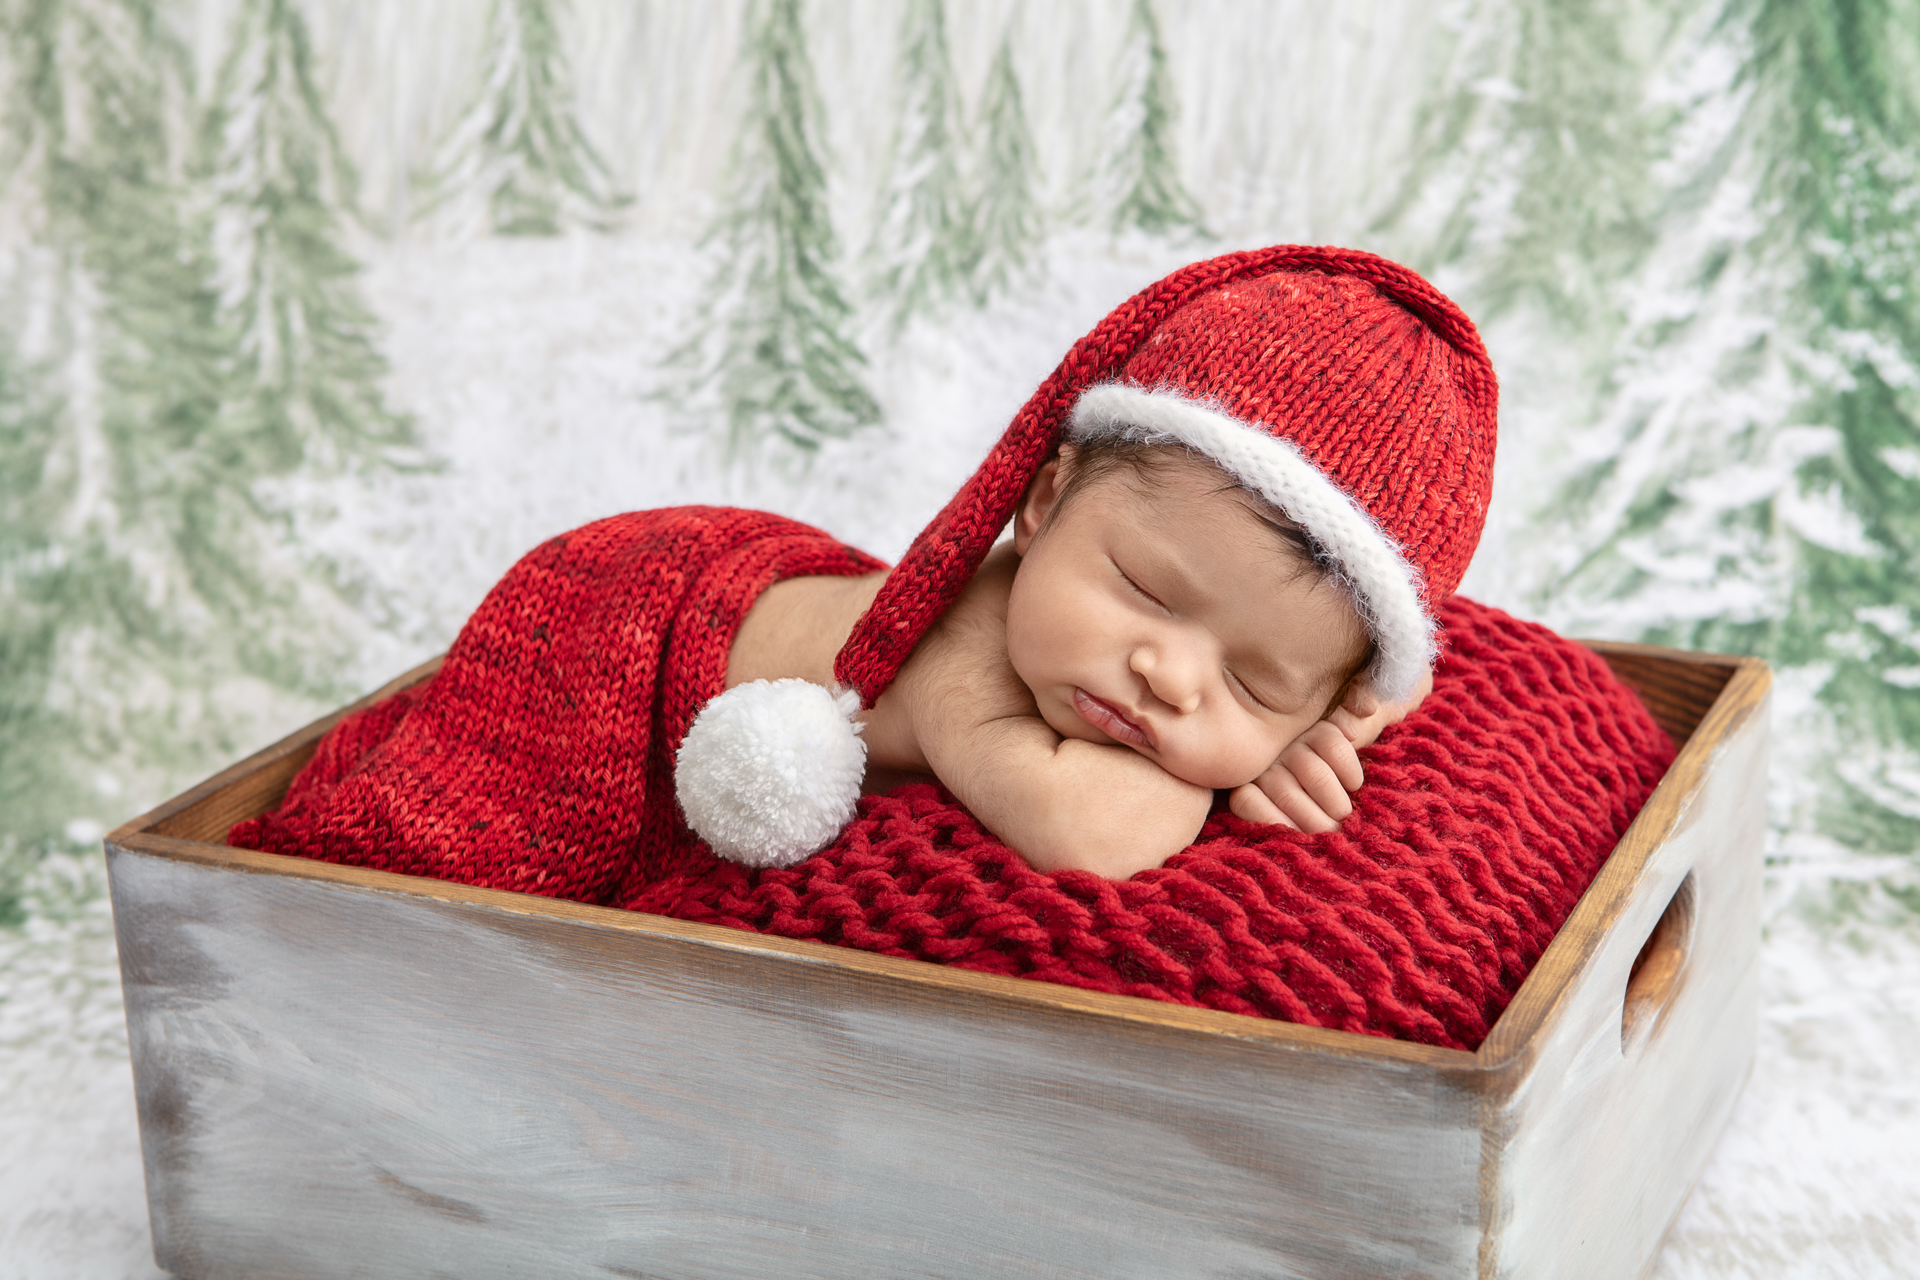 newborn baby wearing a Santa stocking cap and wrapped in a red chenille blanket